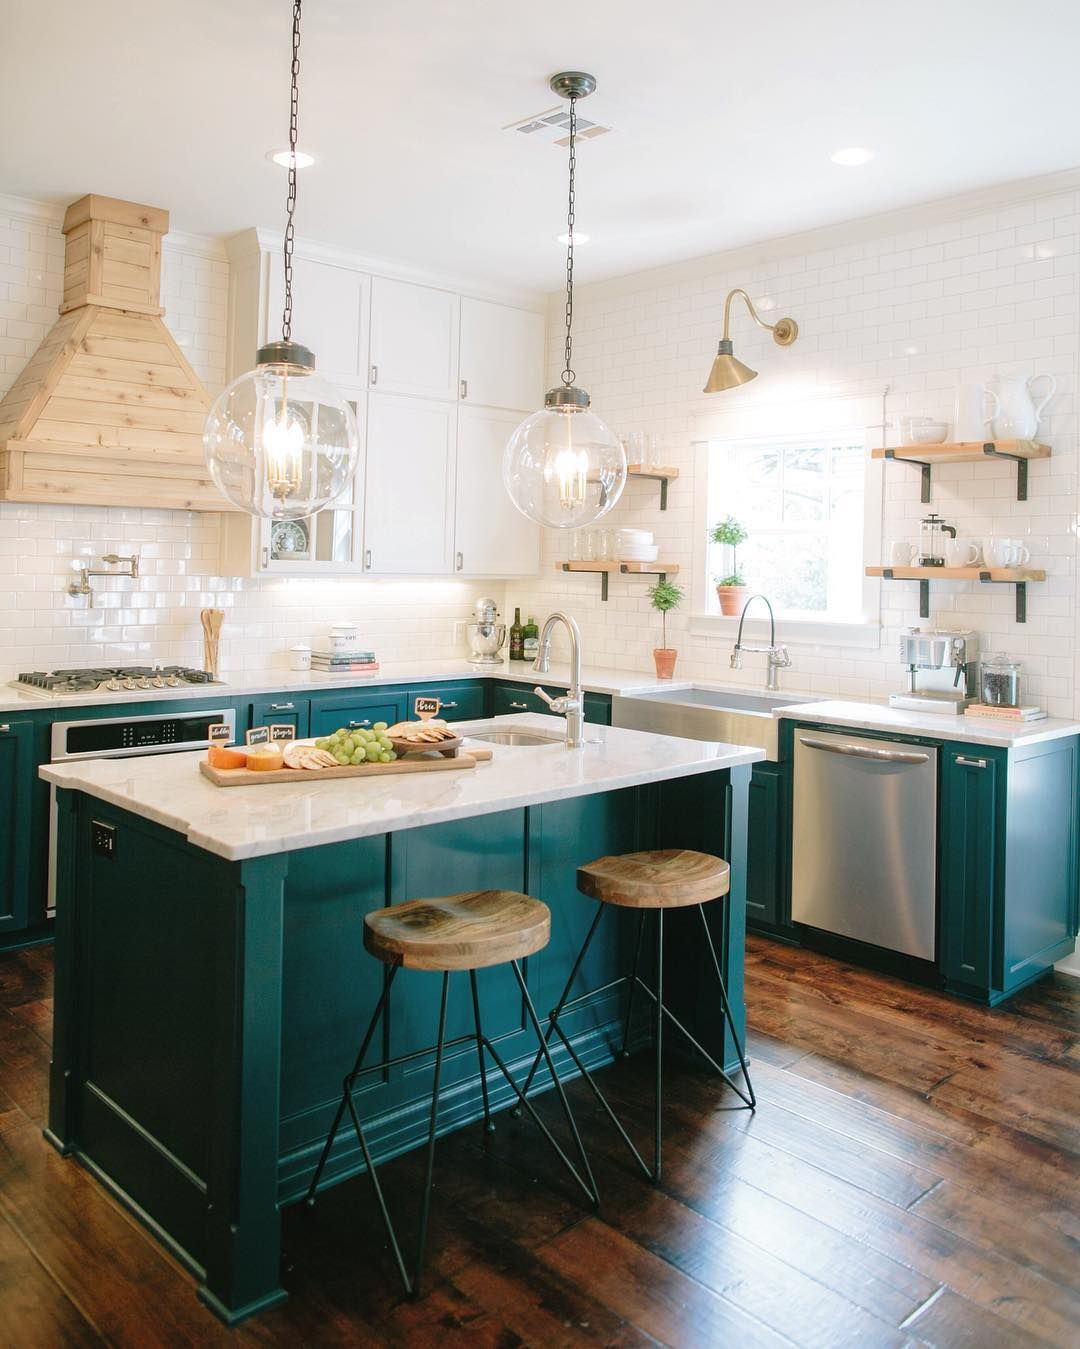 Designers Are Loving This Color For Kitchen Cabinets Right Now Dark Teal